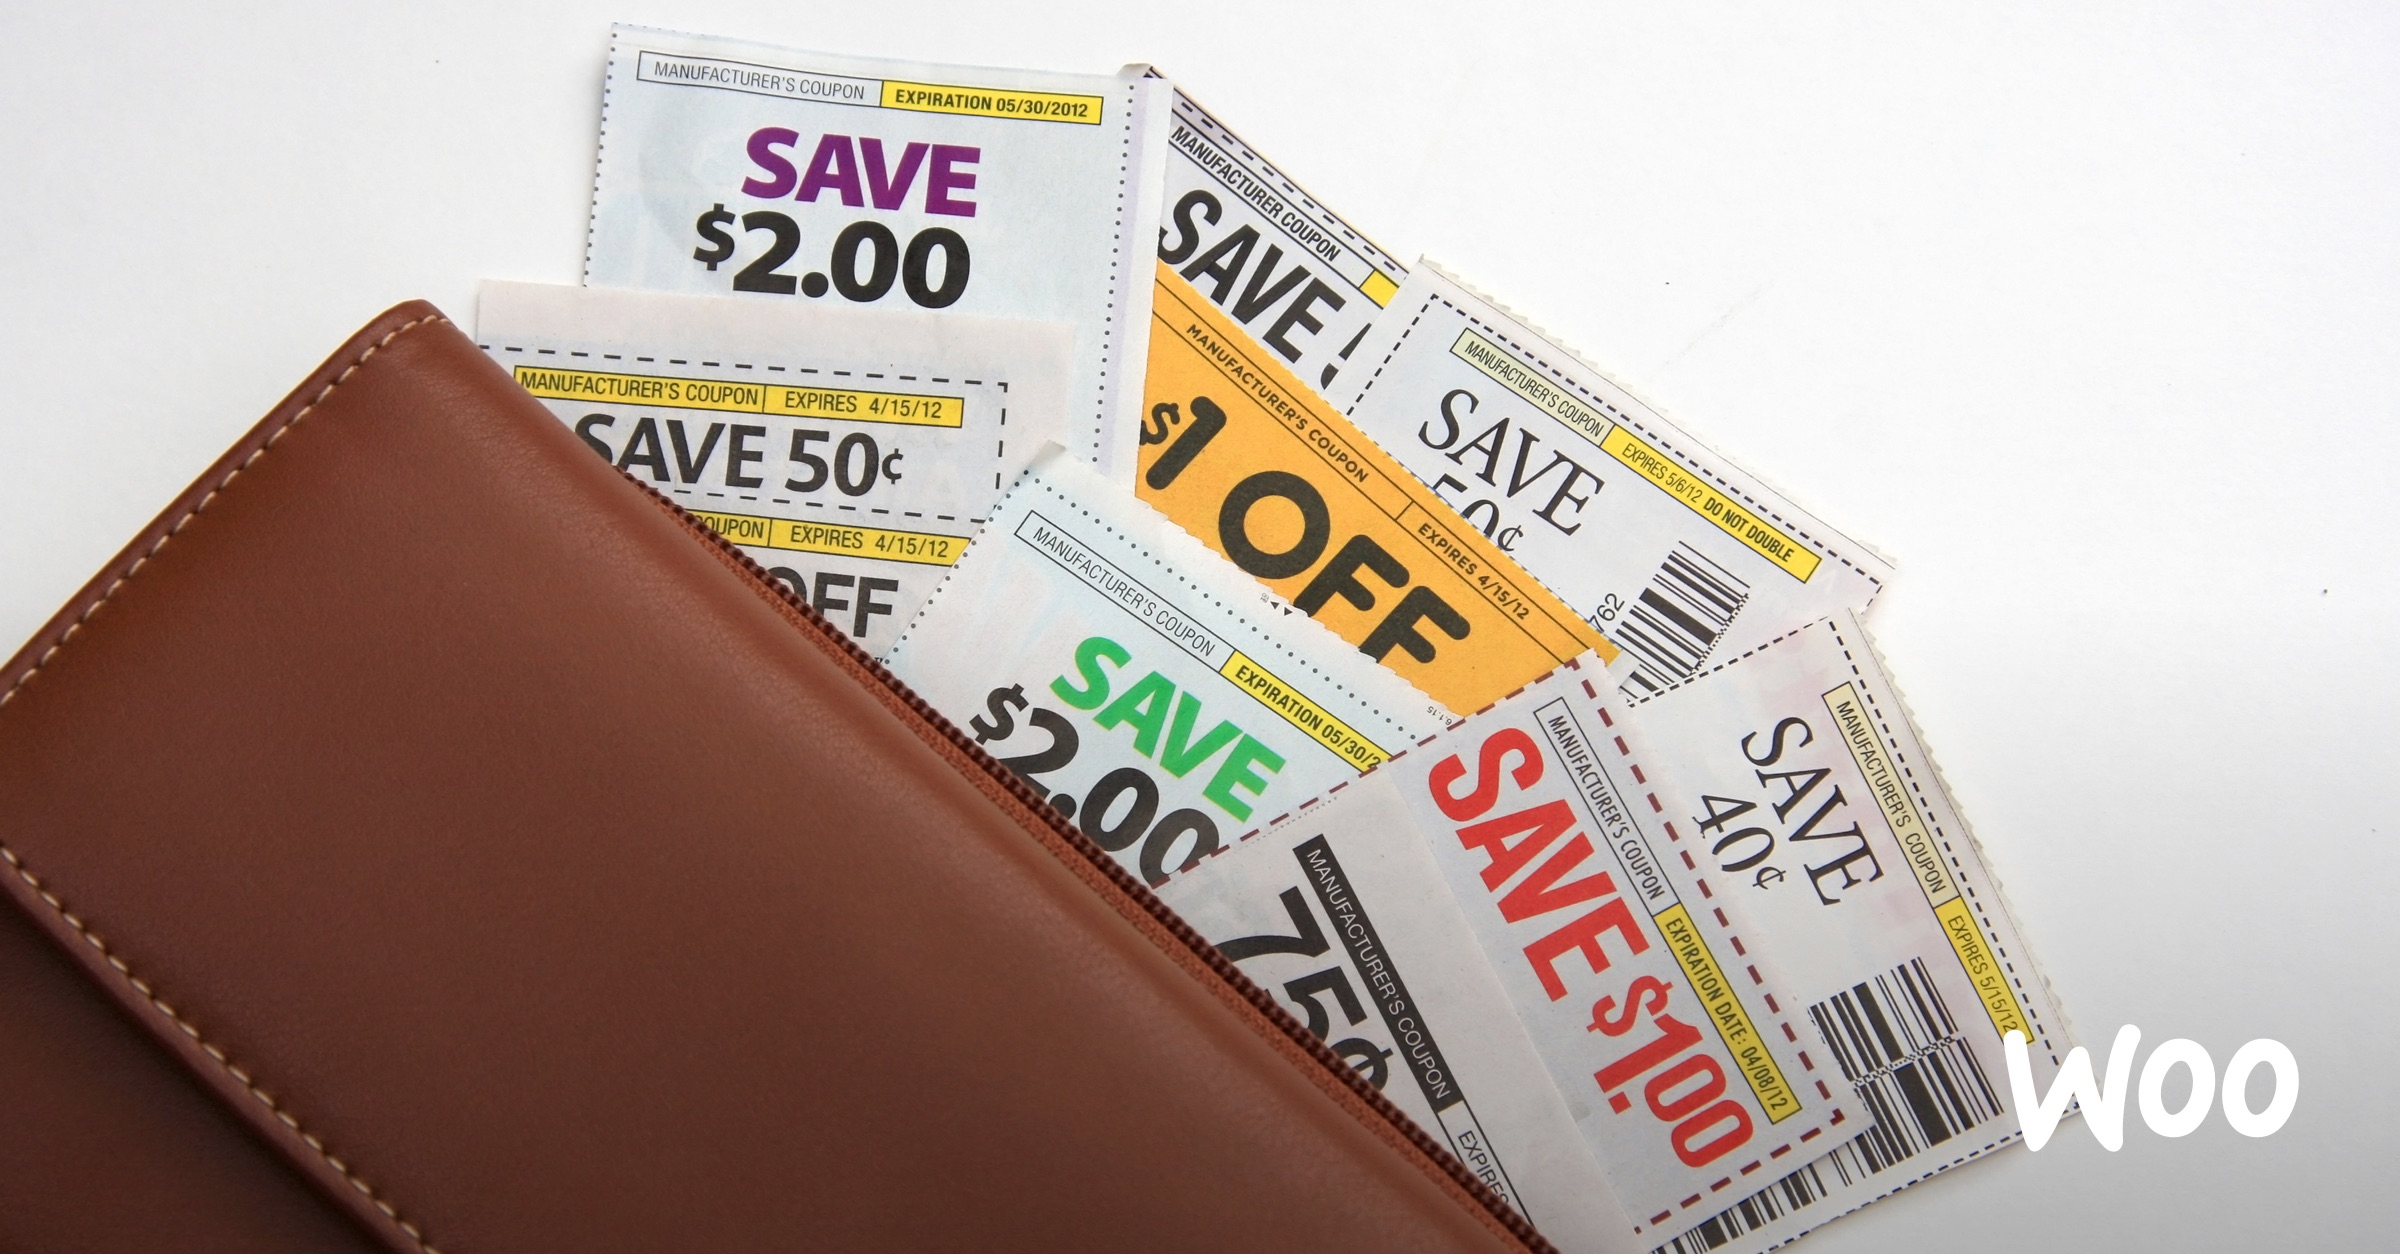 woocommerce.com - eCommerce Couponing Pitfalls and How to Avoid Them